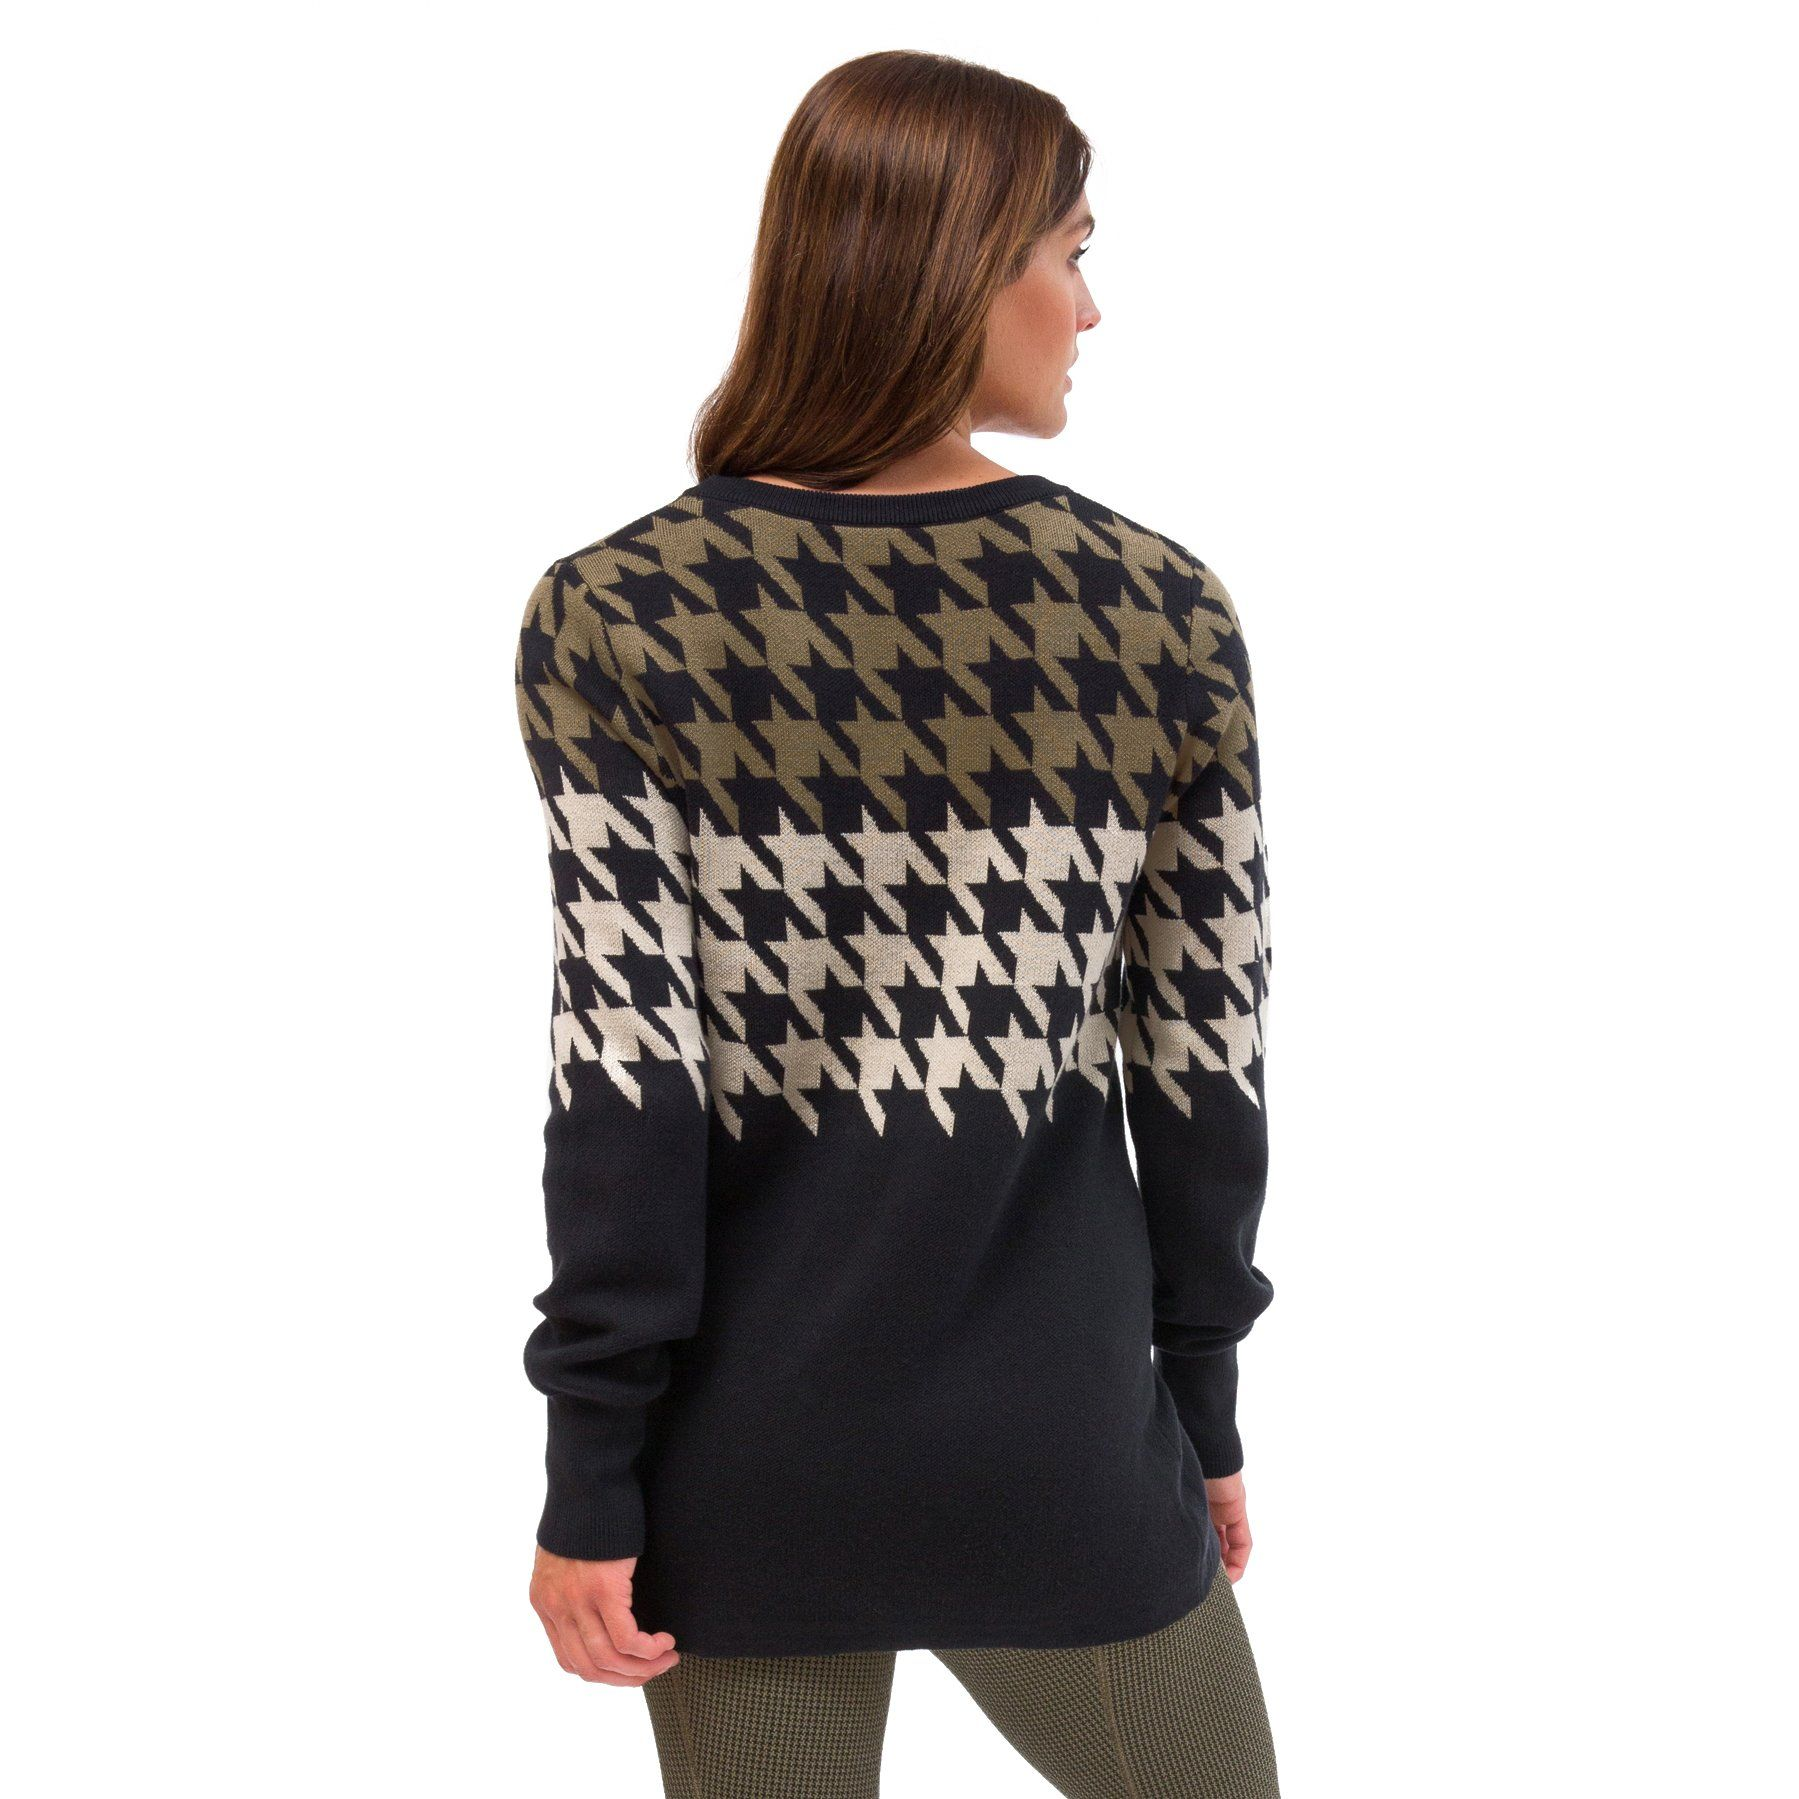 Kerrits-Equestrian-Women-039-s-Houndstooth-Tunic-Sweater-with-Scoop-Neck miniature 9